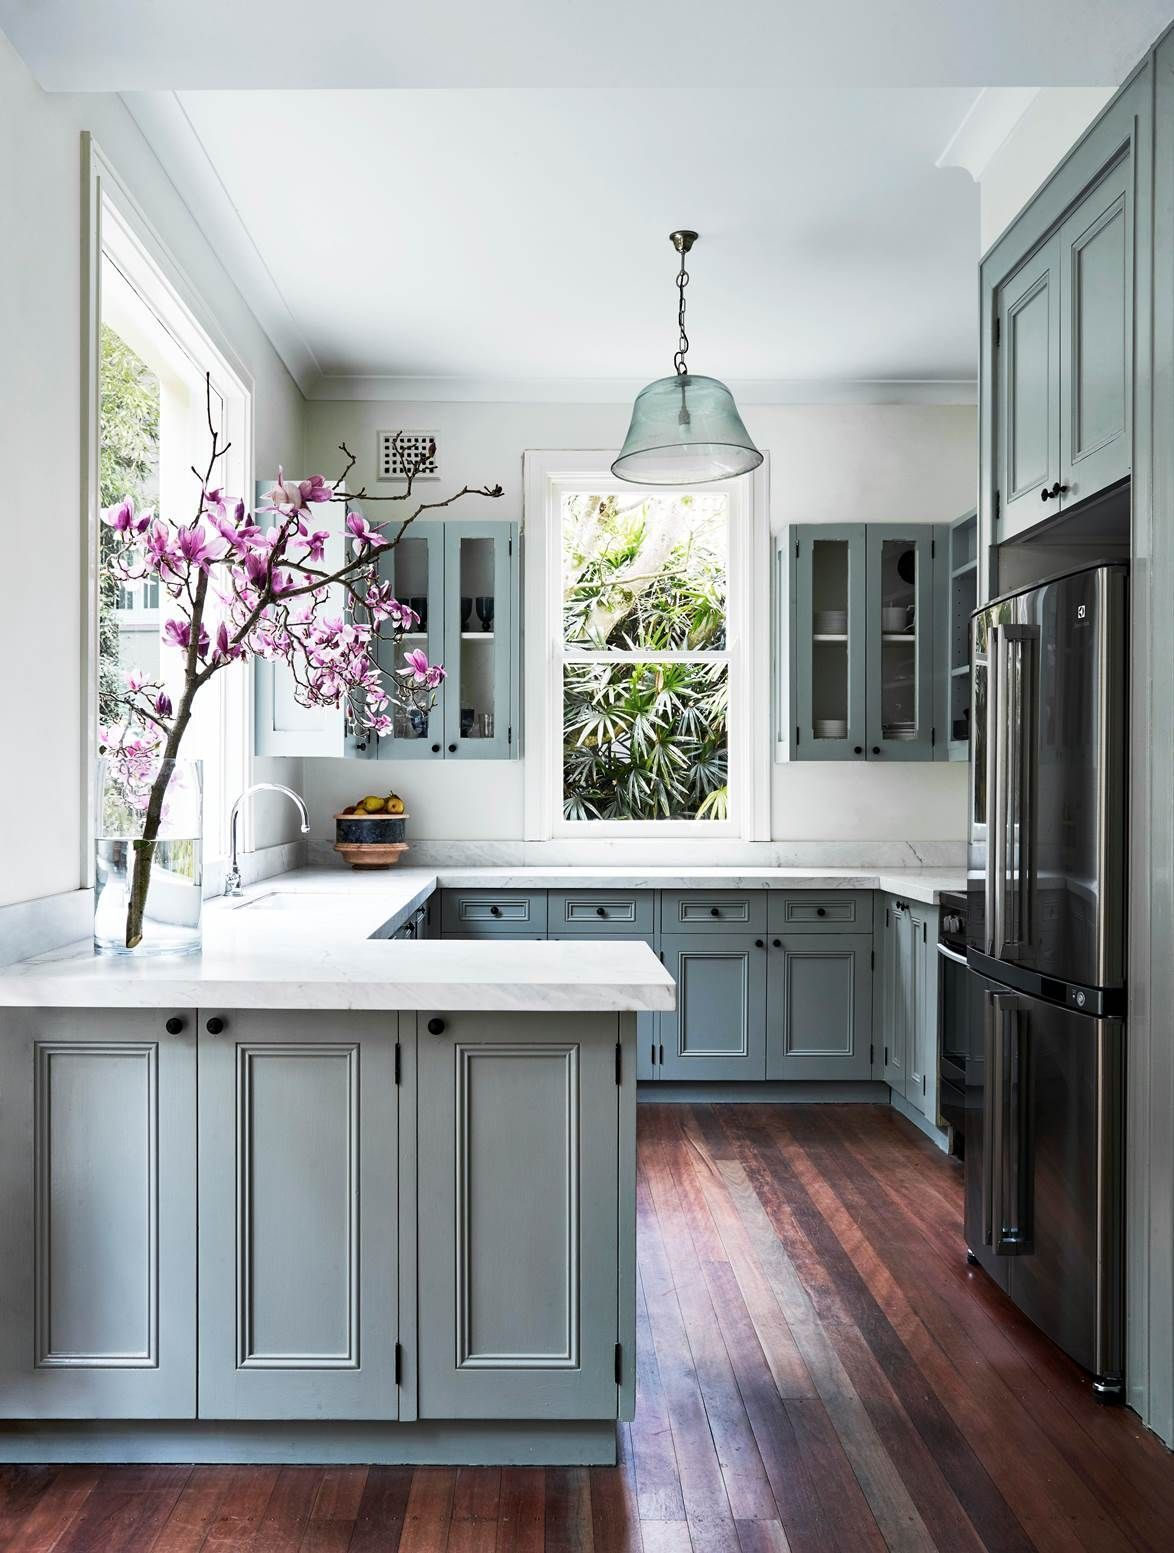 All Time Seasons In 2020 Kitchen Design Small Kitchen Remodel Small Grey Kitchen Cabinets